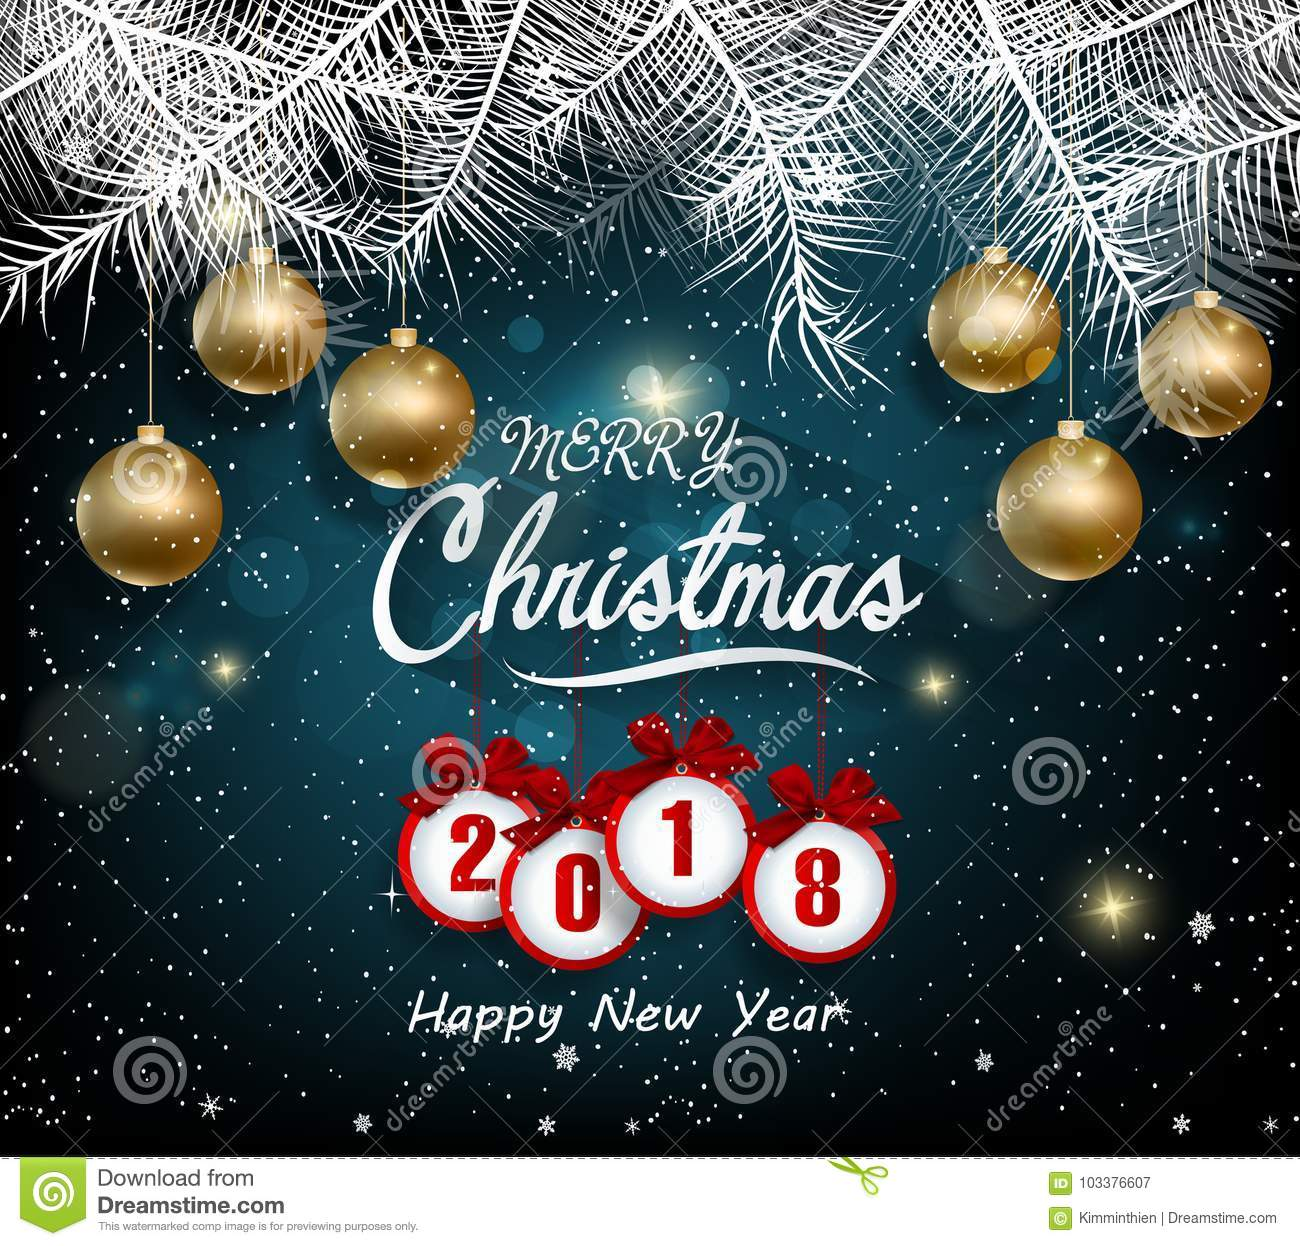 Happy New Year 2018 Greeting Card Merry Christmas Stock Vector